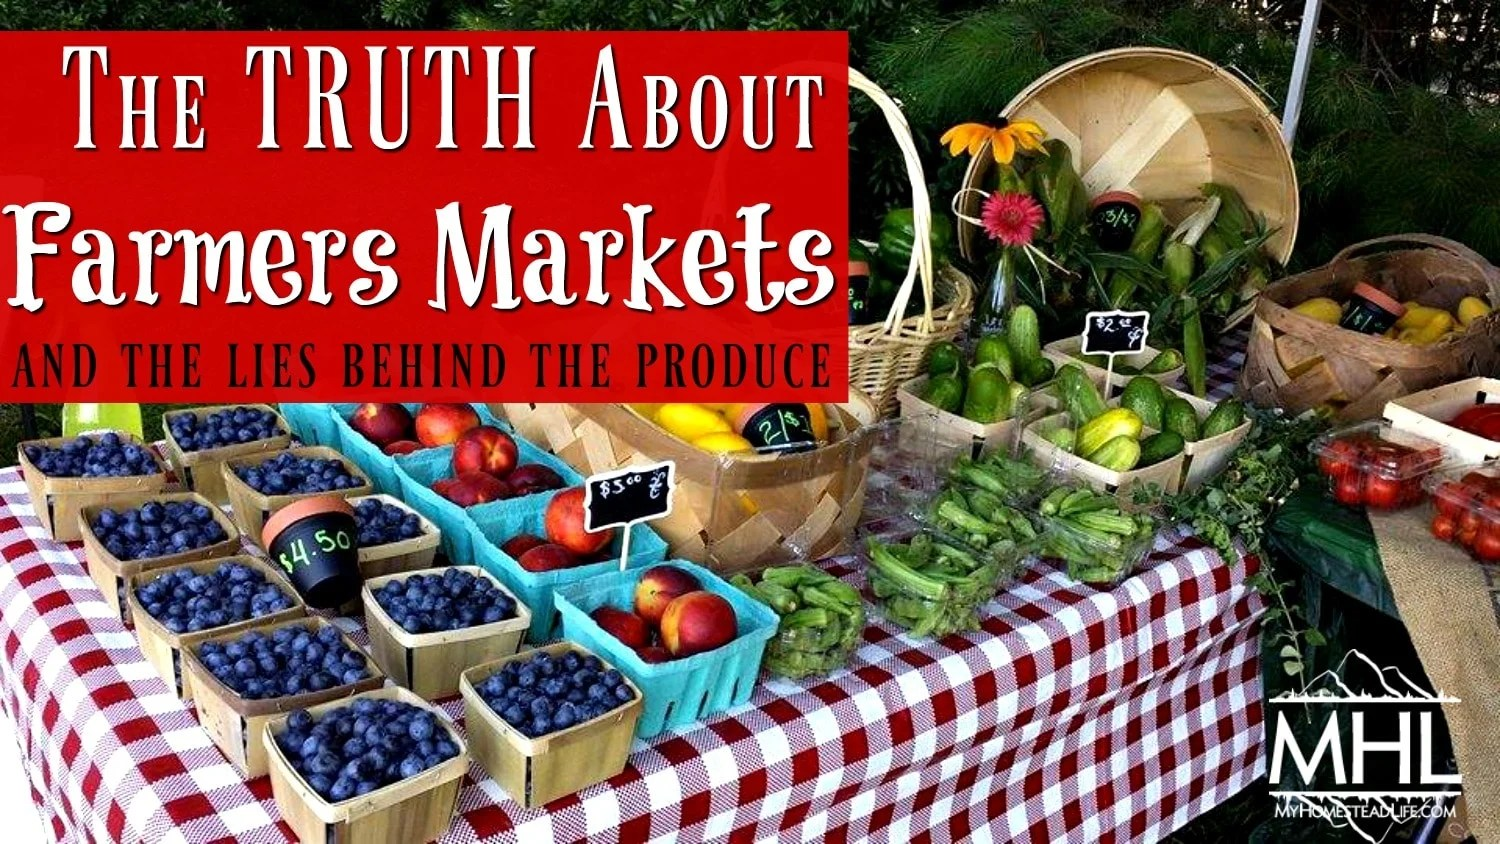 The TRUTH About Farmers Markets and the lies behind the produce